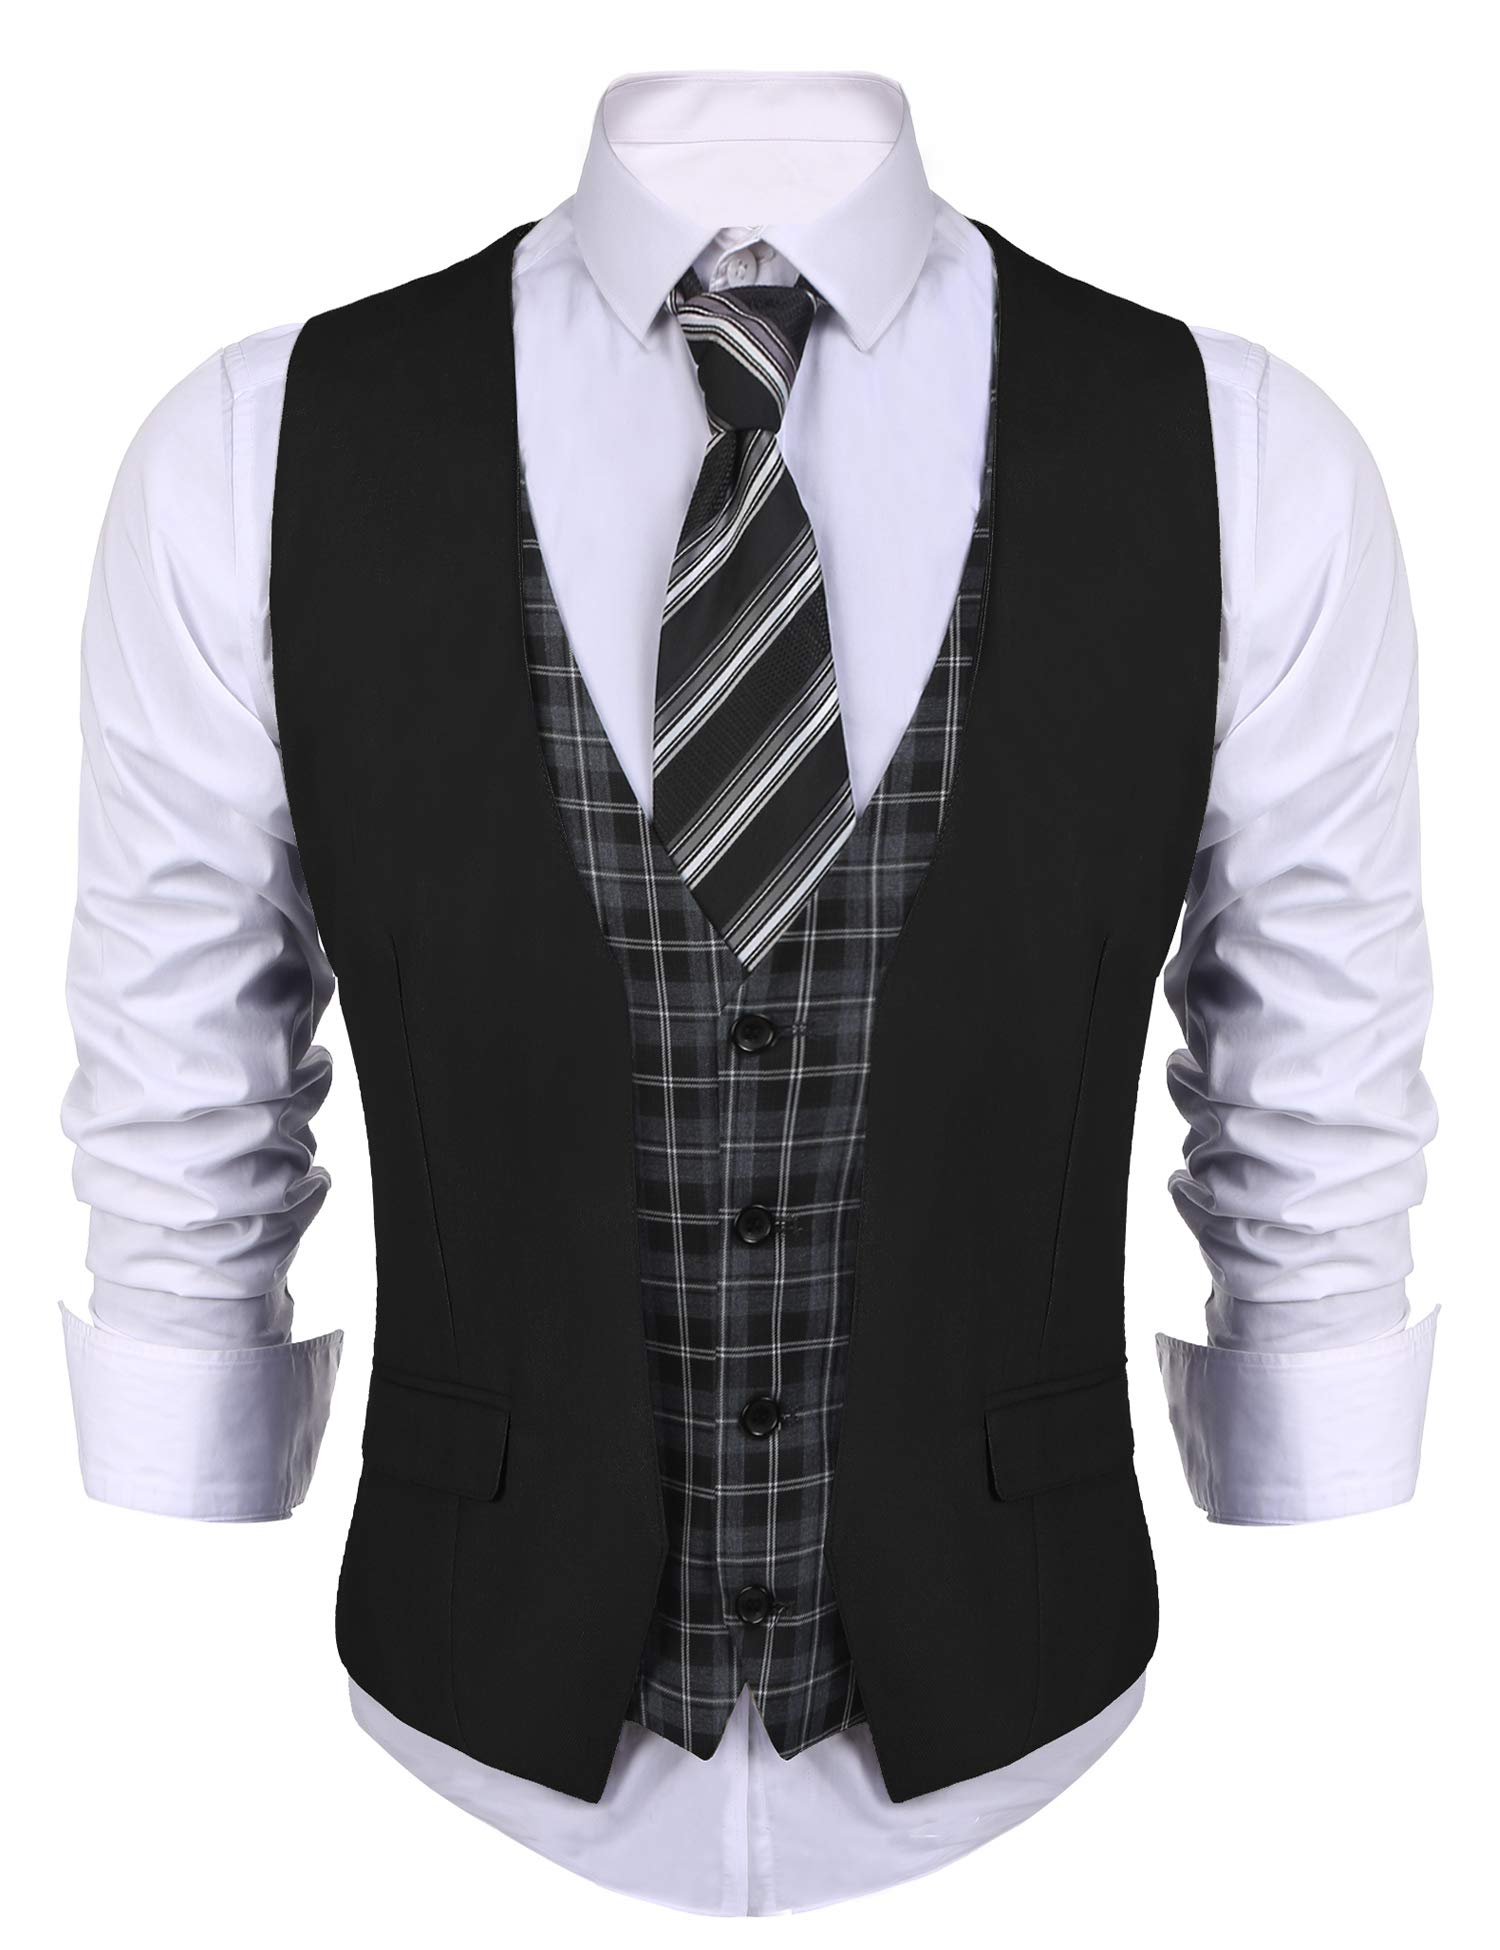 COOFANDY Men's Business Suit Vest layered Plaid Dress Waistcoat for Wedding, Date, Dinner (XXX-Large, Black)